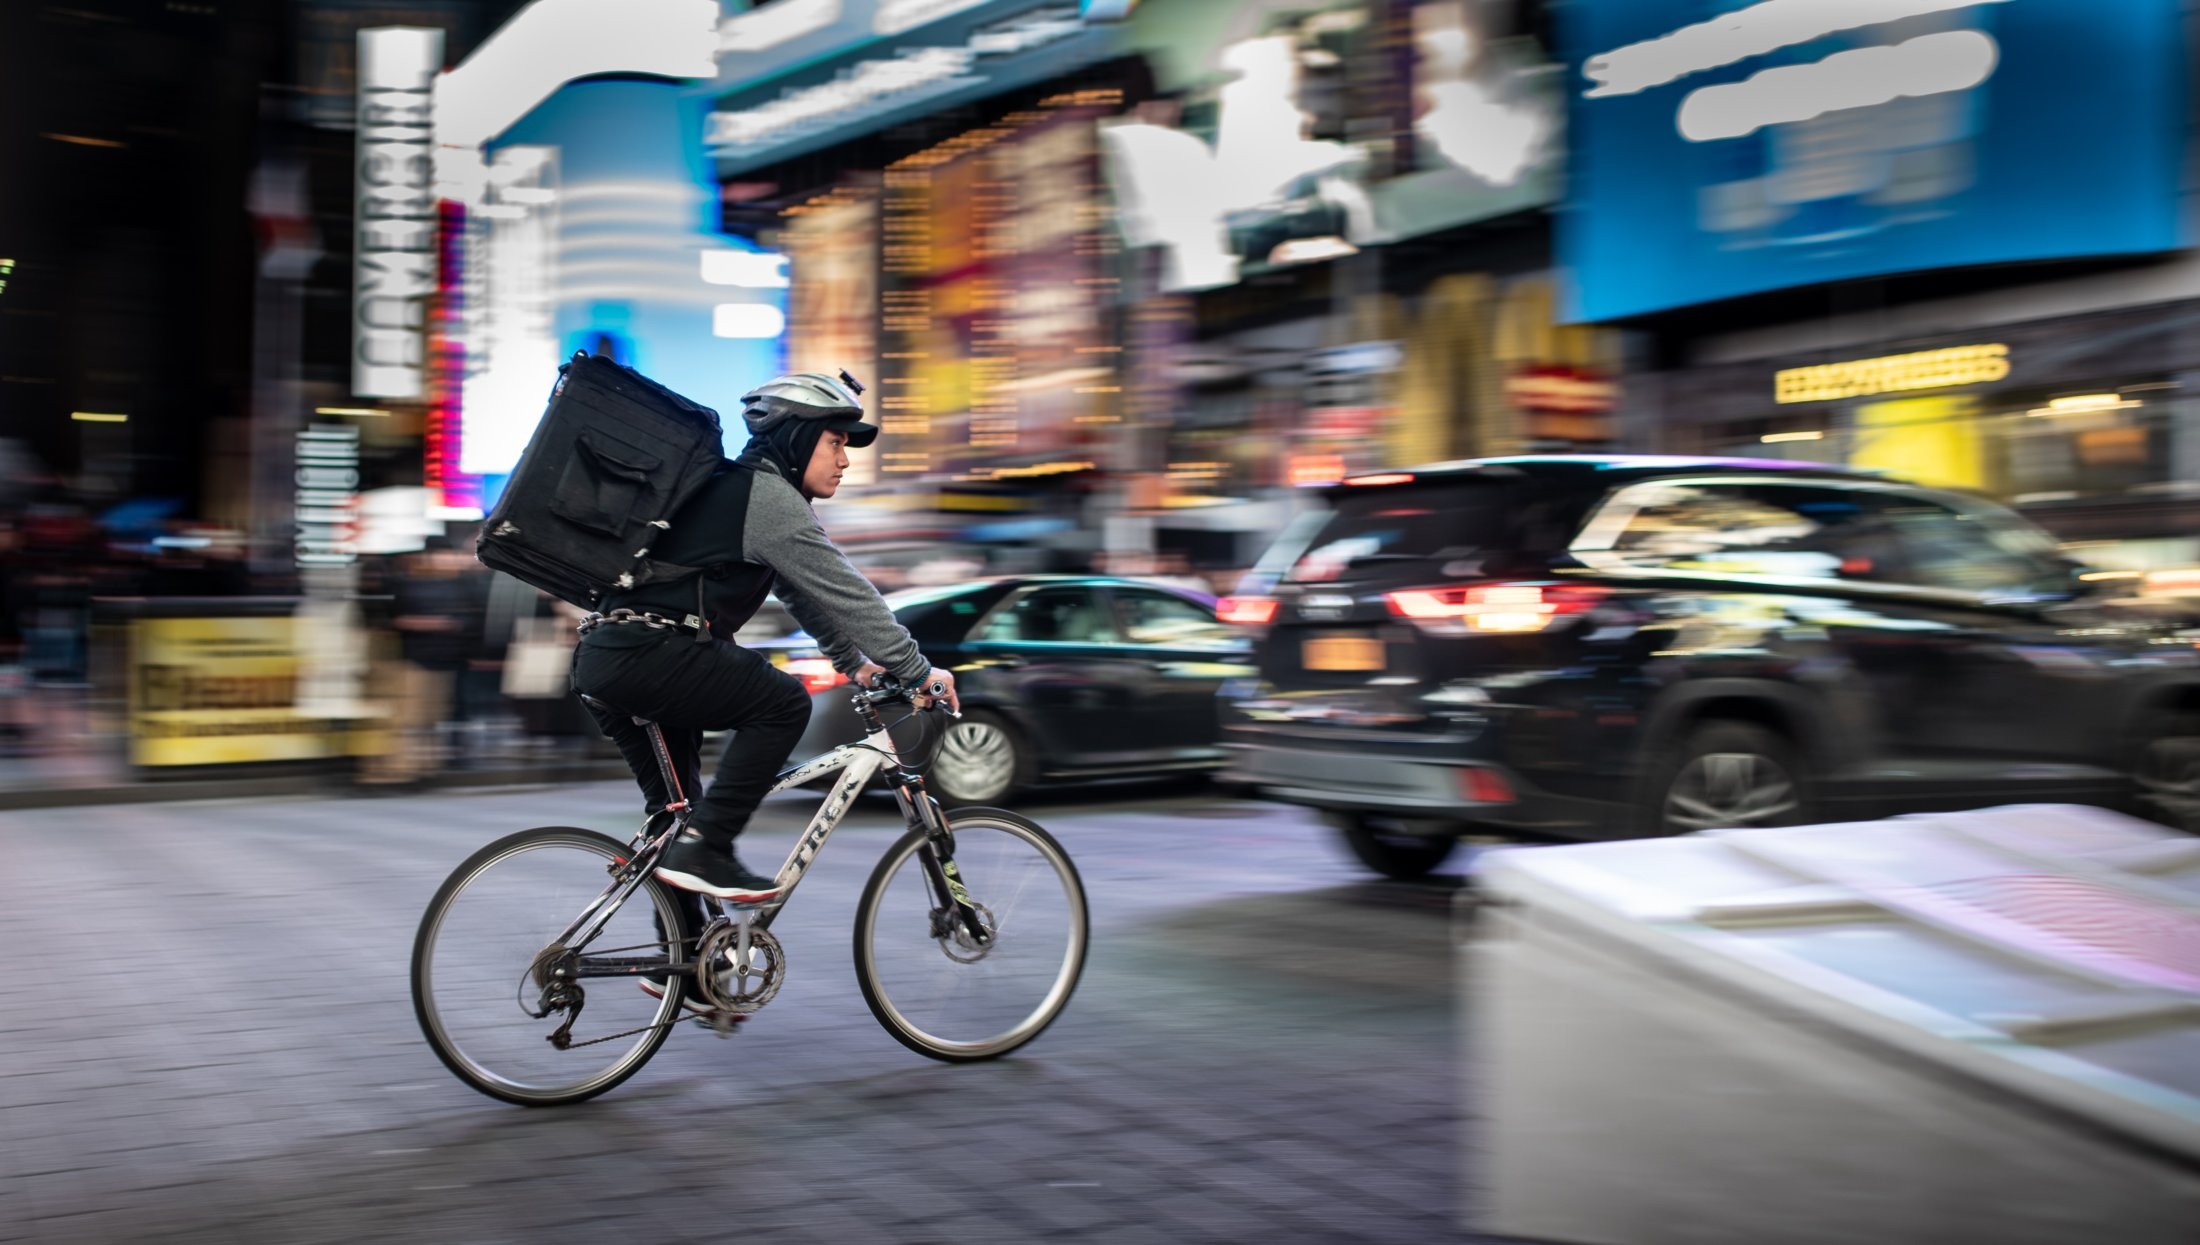 Delivery person riding a bike